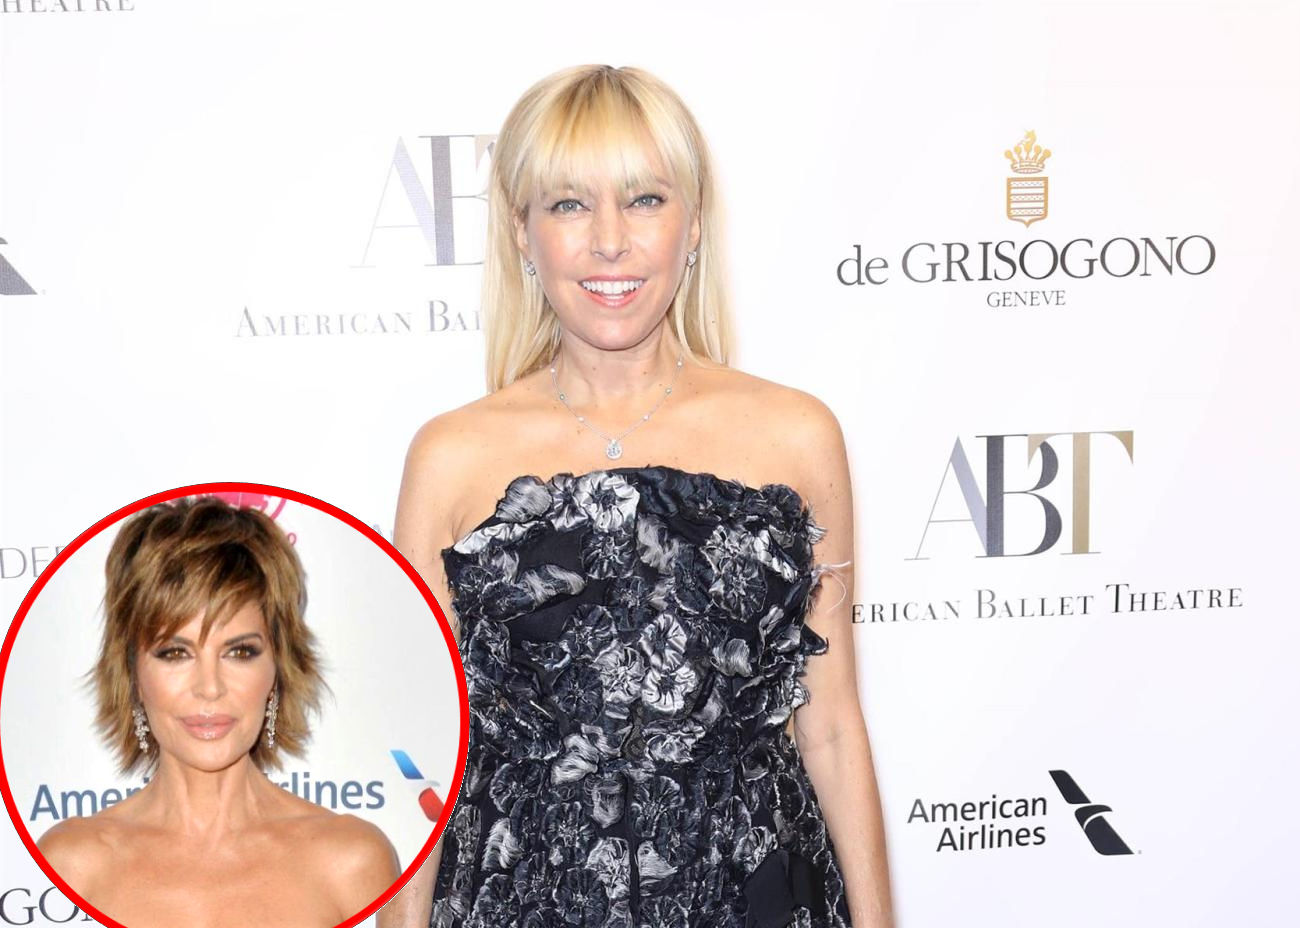 Sutton Stracke Talks Biggest Regret of RHOBH, Lisa Rinna's Double Standards, and the Hardest Part of Filming, Plus Shares Fans Biggest Misconception of Her